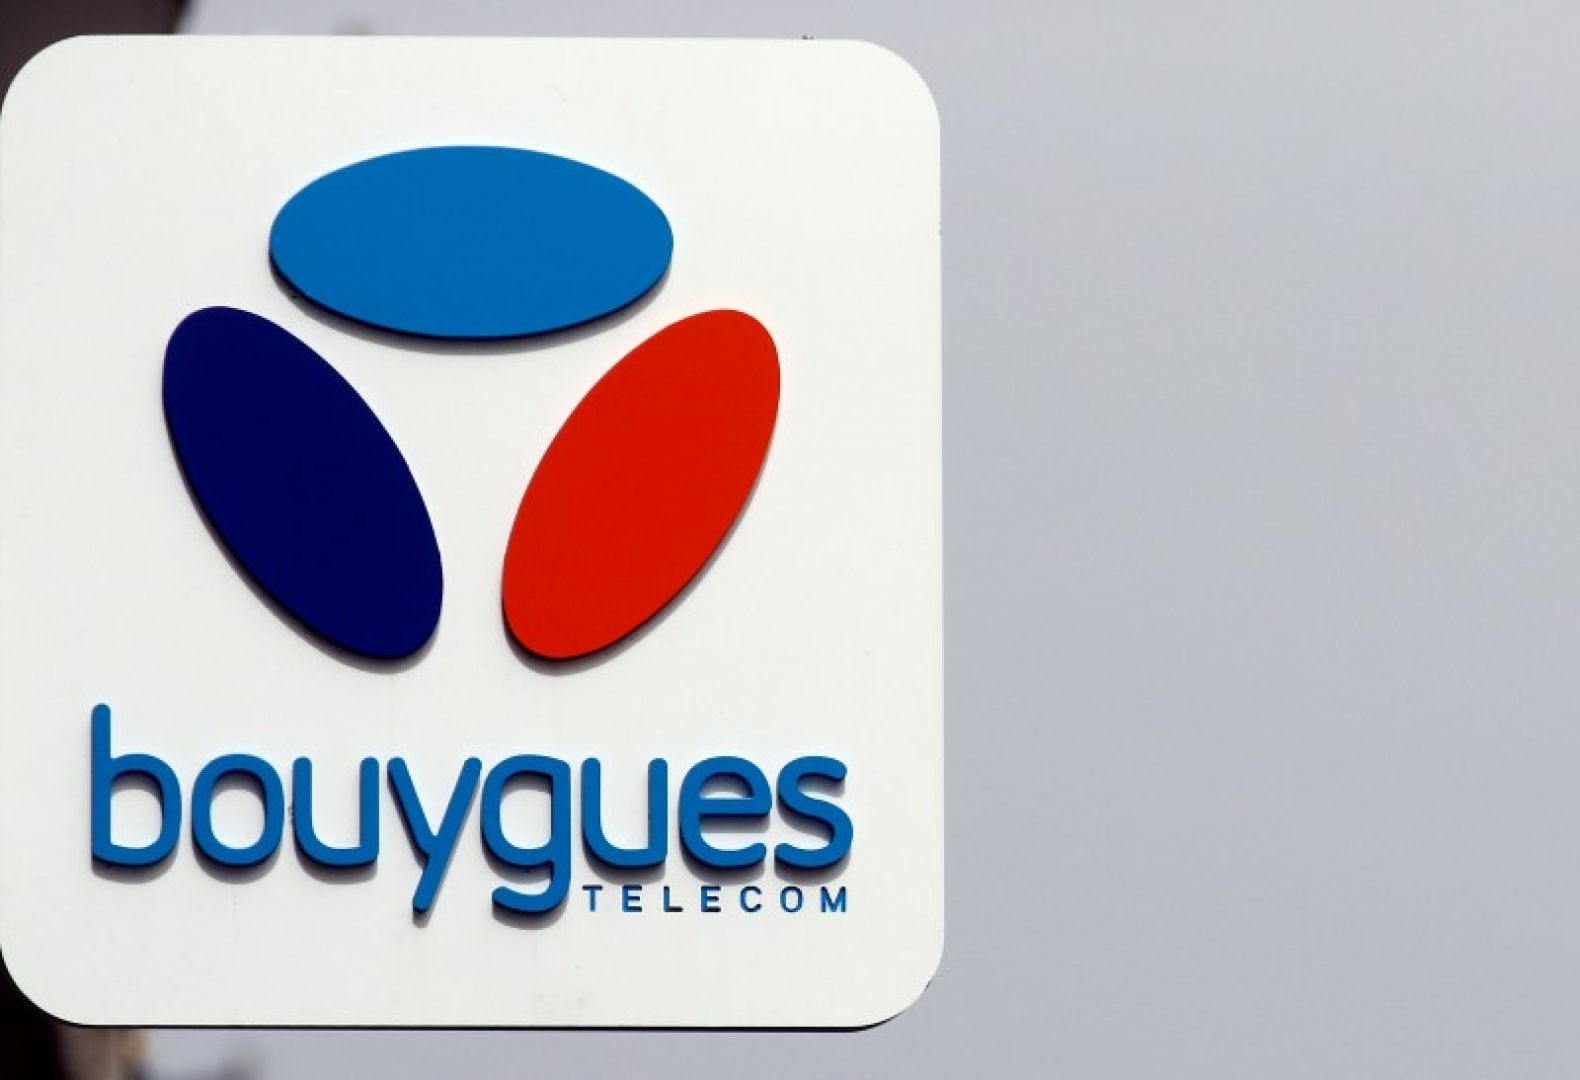 M6 et Bouygues Telecom s'accordent — Distribution